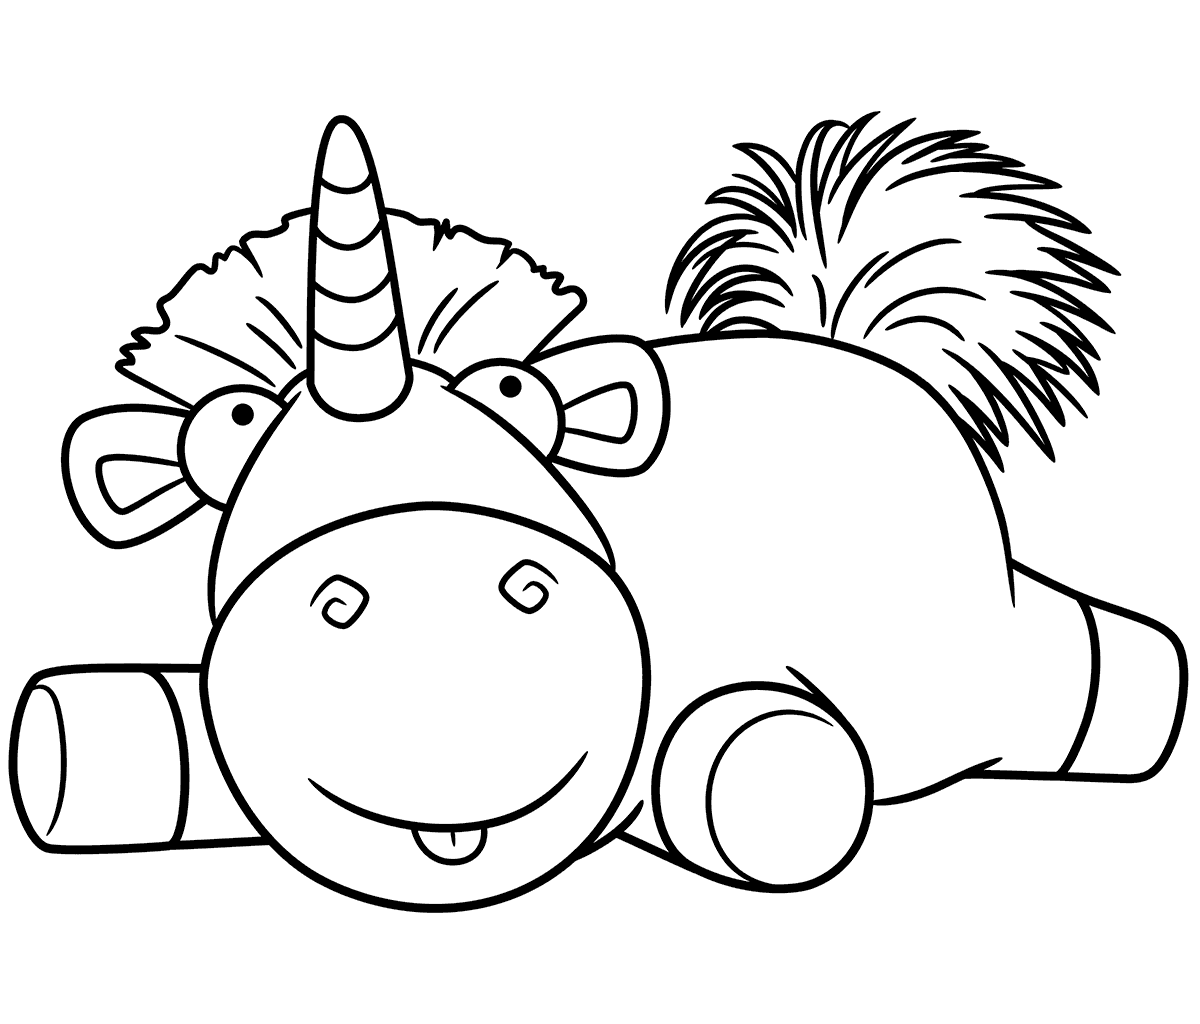 Despicable Me Unicorn Coloring Pages.